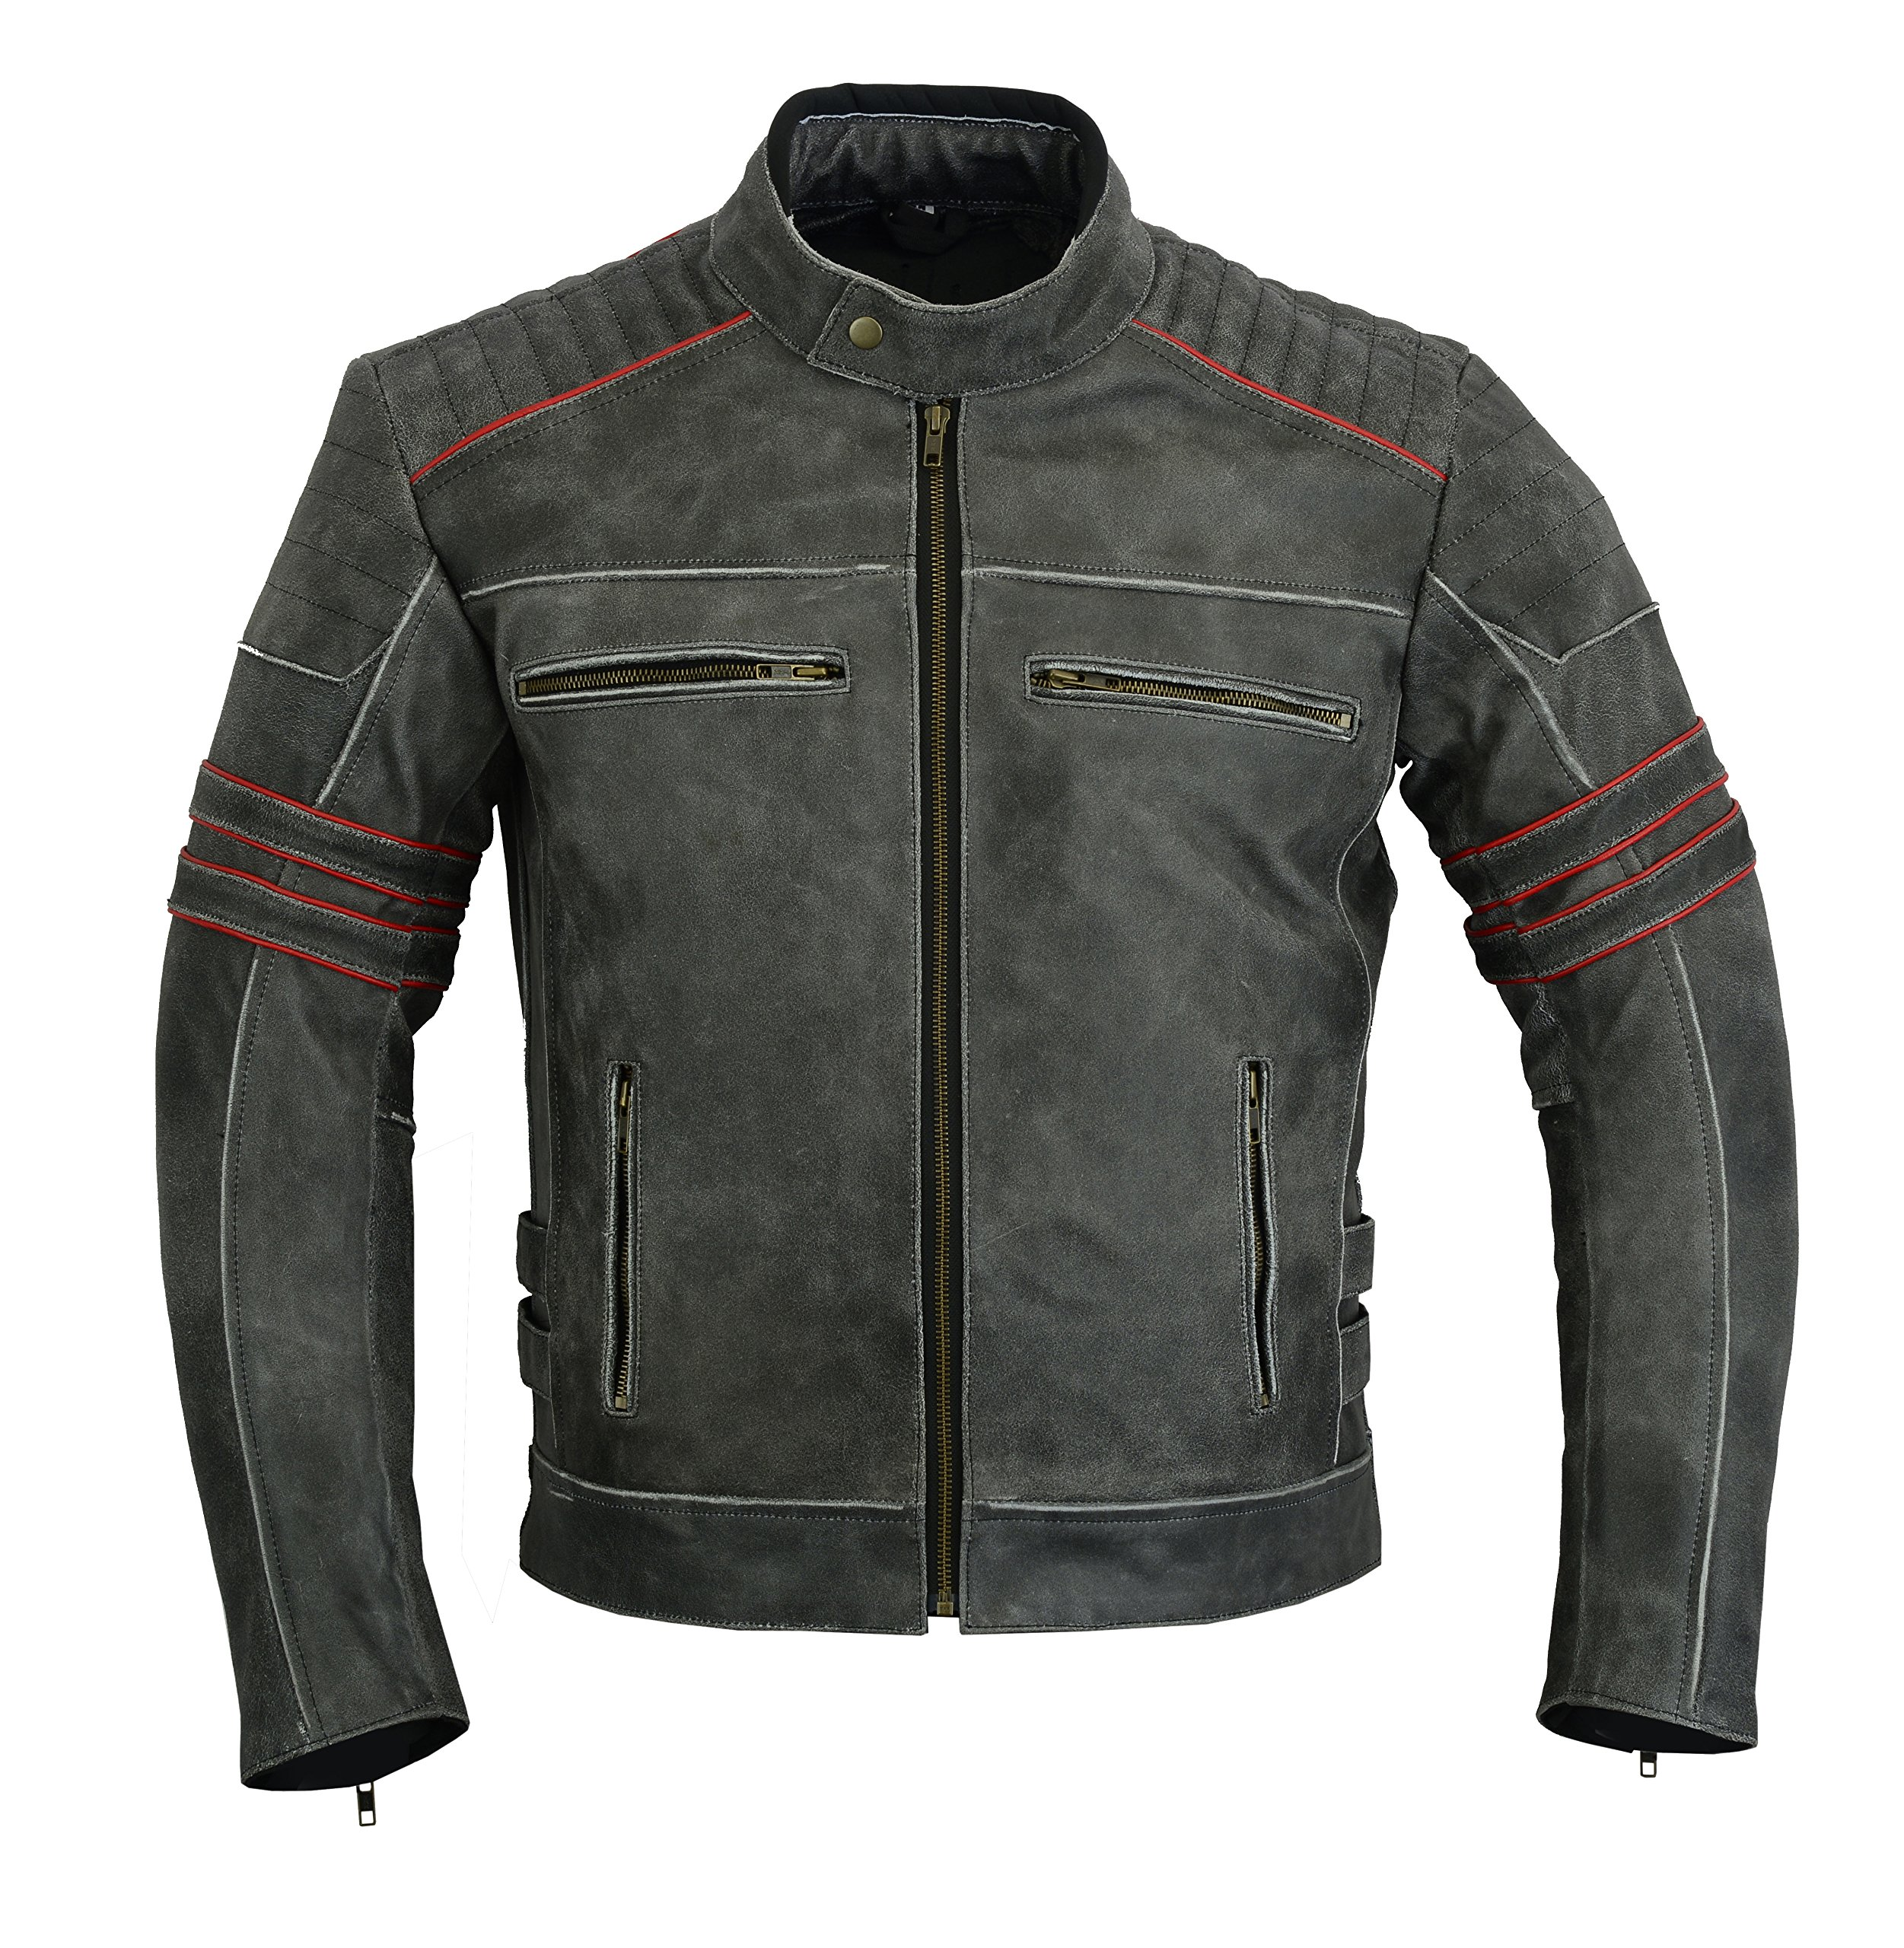 MENS MOTORCYCLE ARMOURED MOTOR SPORTS HIGH PROTECTION MOTORCYCLE DISTRESSED LEATHER JACKET DC-4099 XL